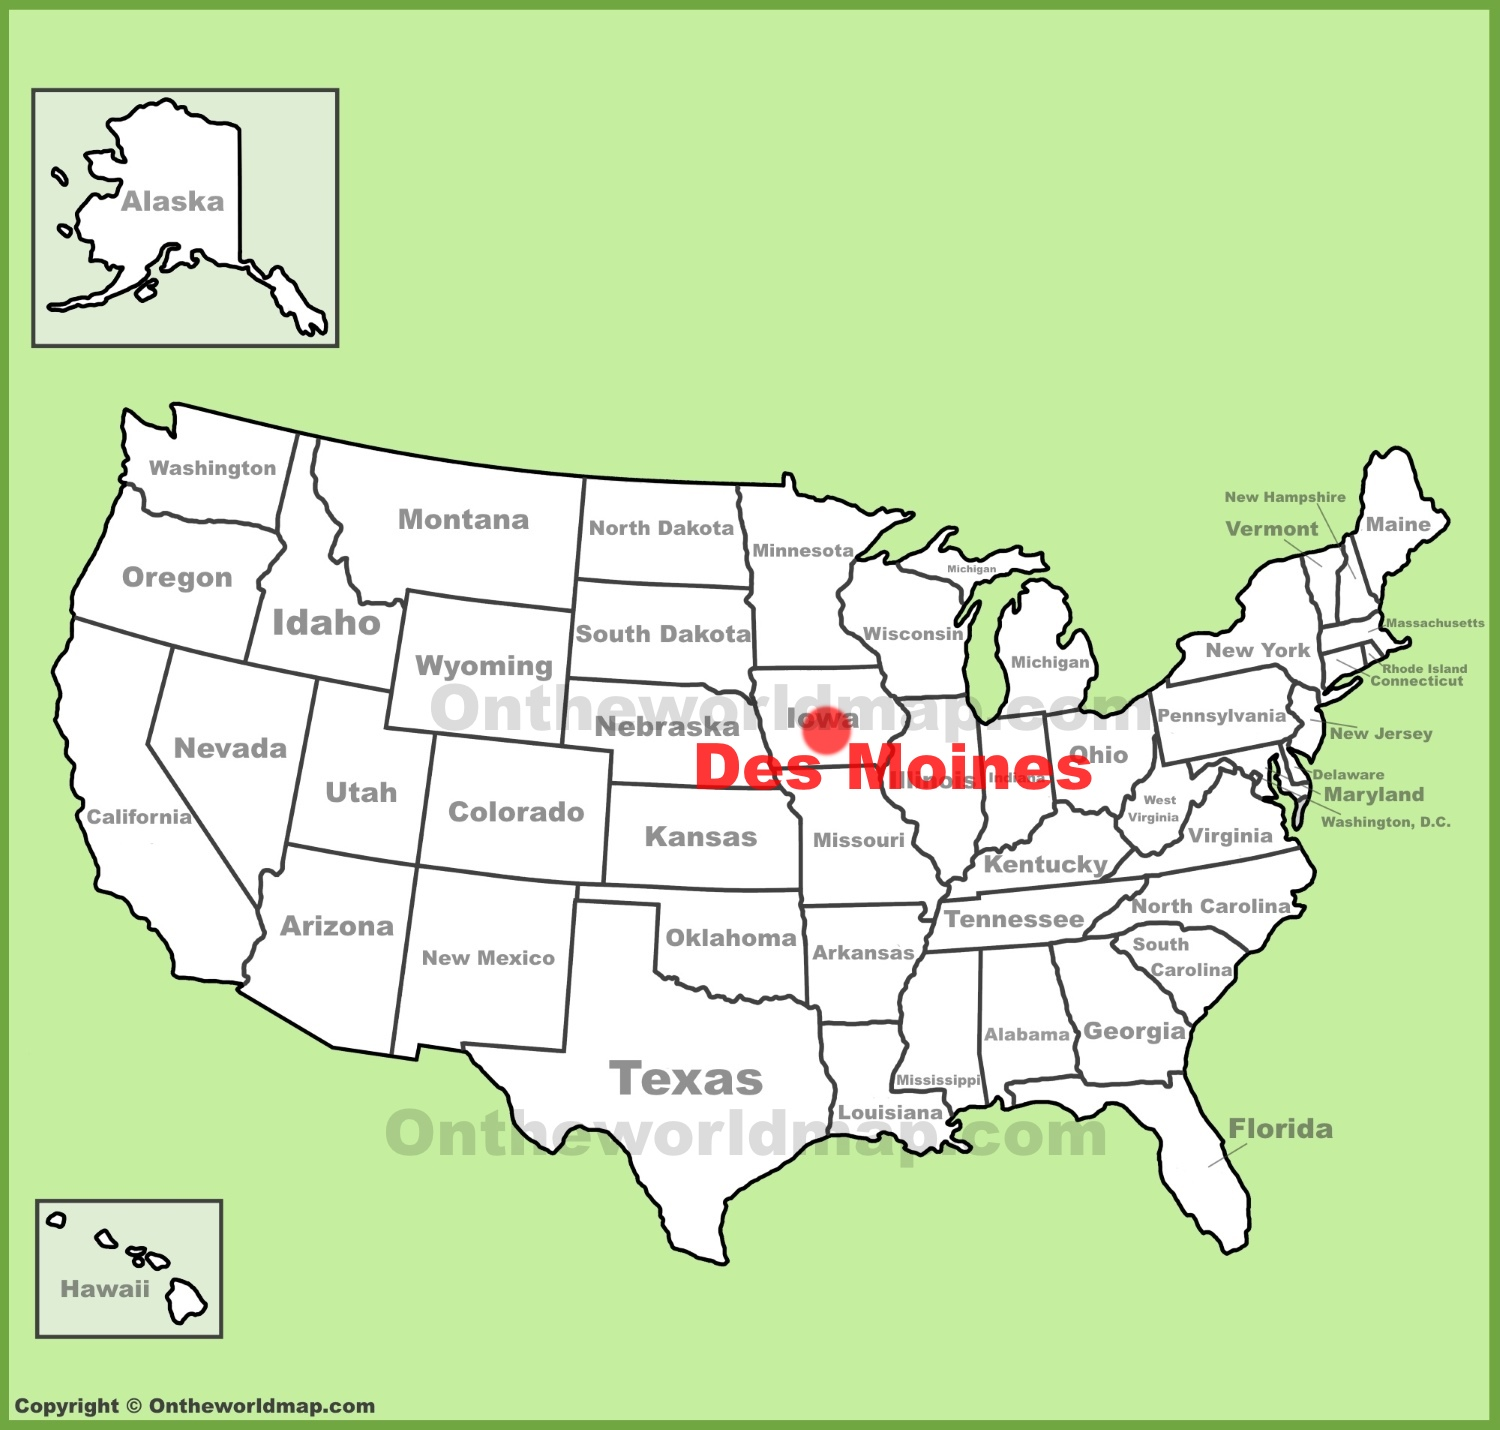 Des Moines location on the US Map